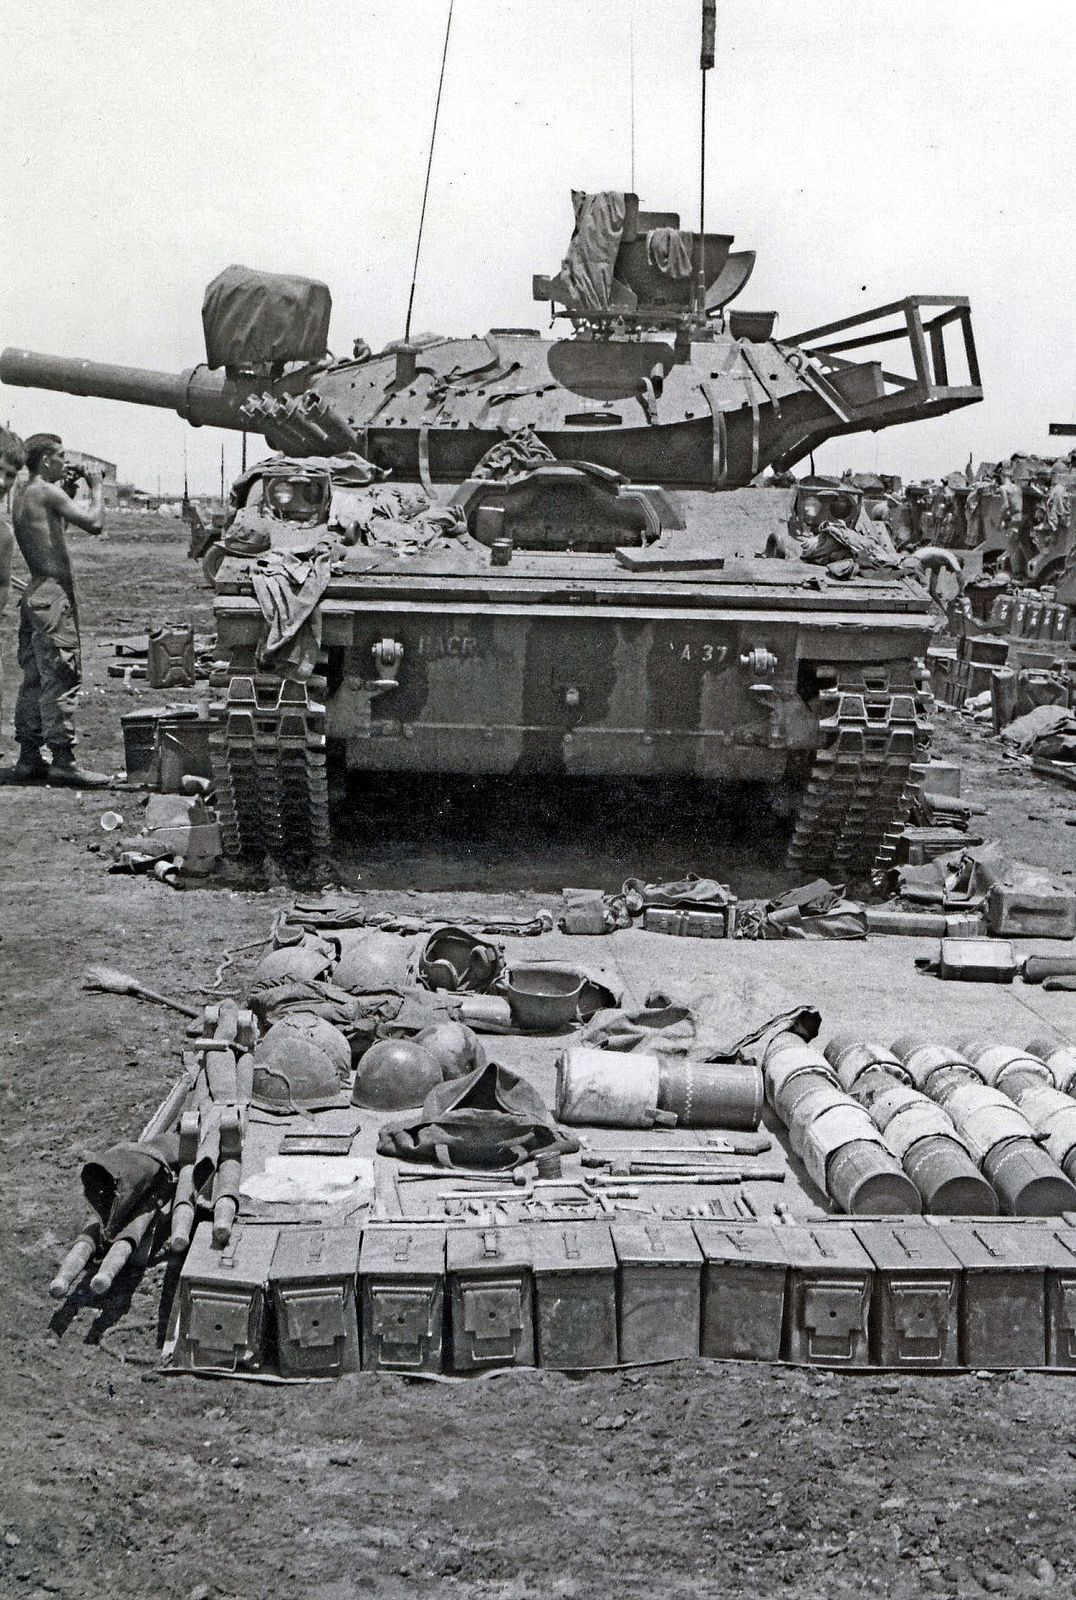 MAINTENANCE & BASIC ISSUE ITEM (BII) LAYOUT OF M551 SHERIDAN, BUMPER # A-37, 11TH ACR. NOTE TURRET BASKET MODIFICATION